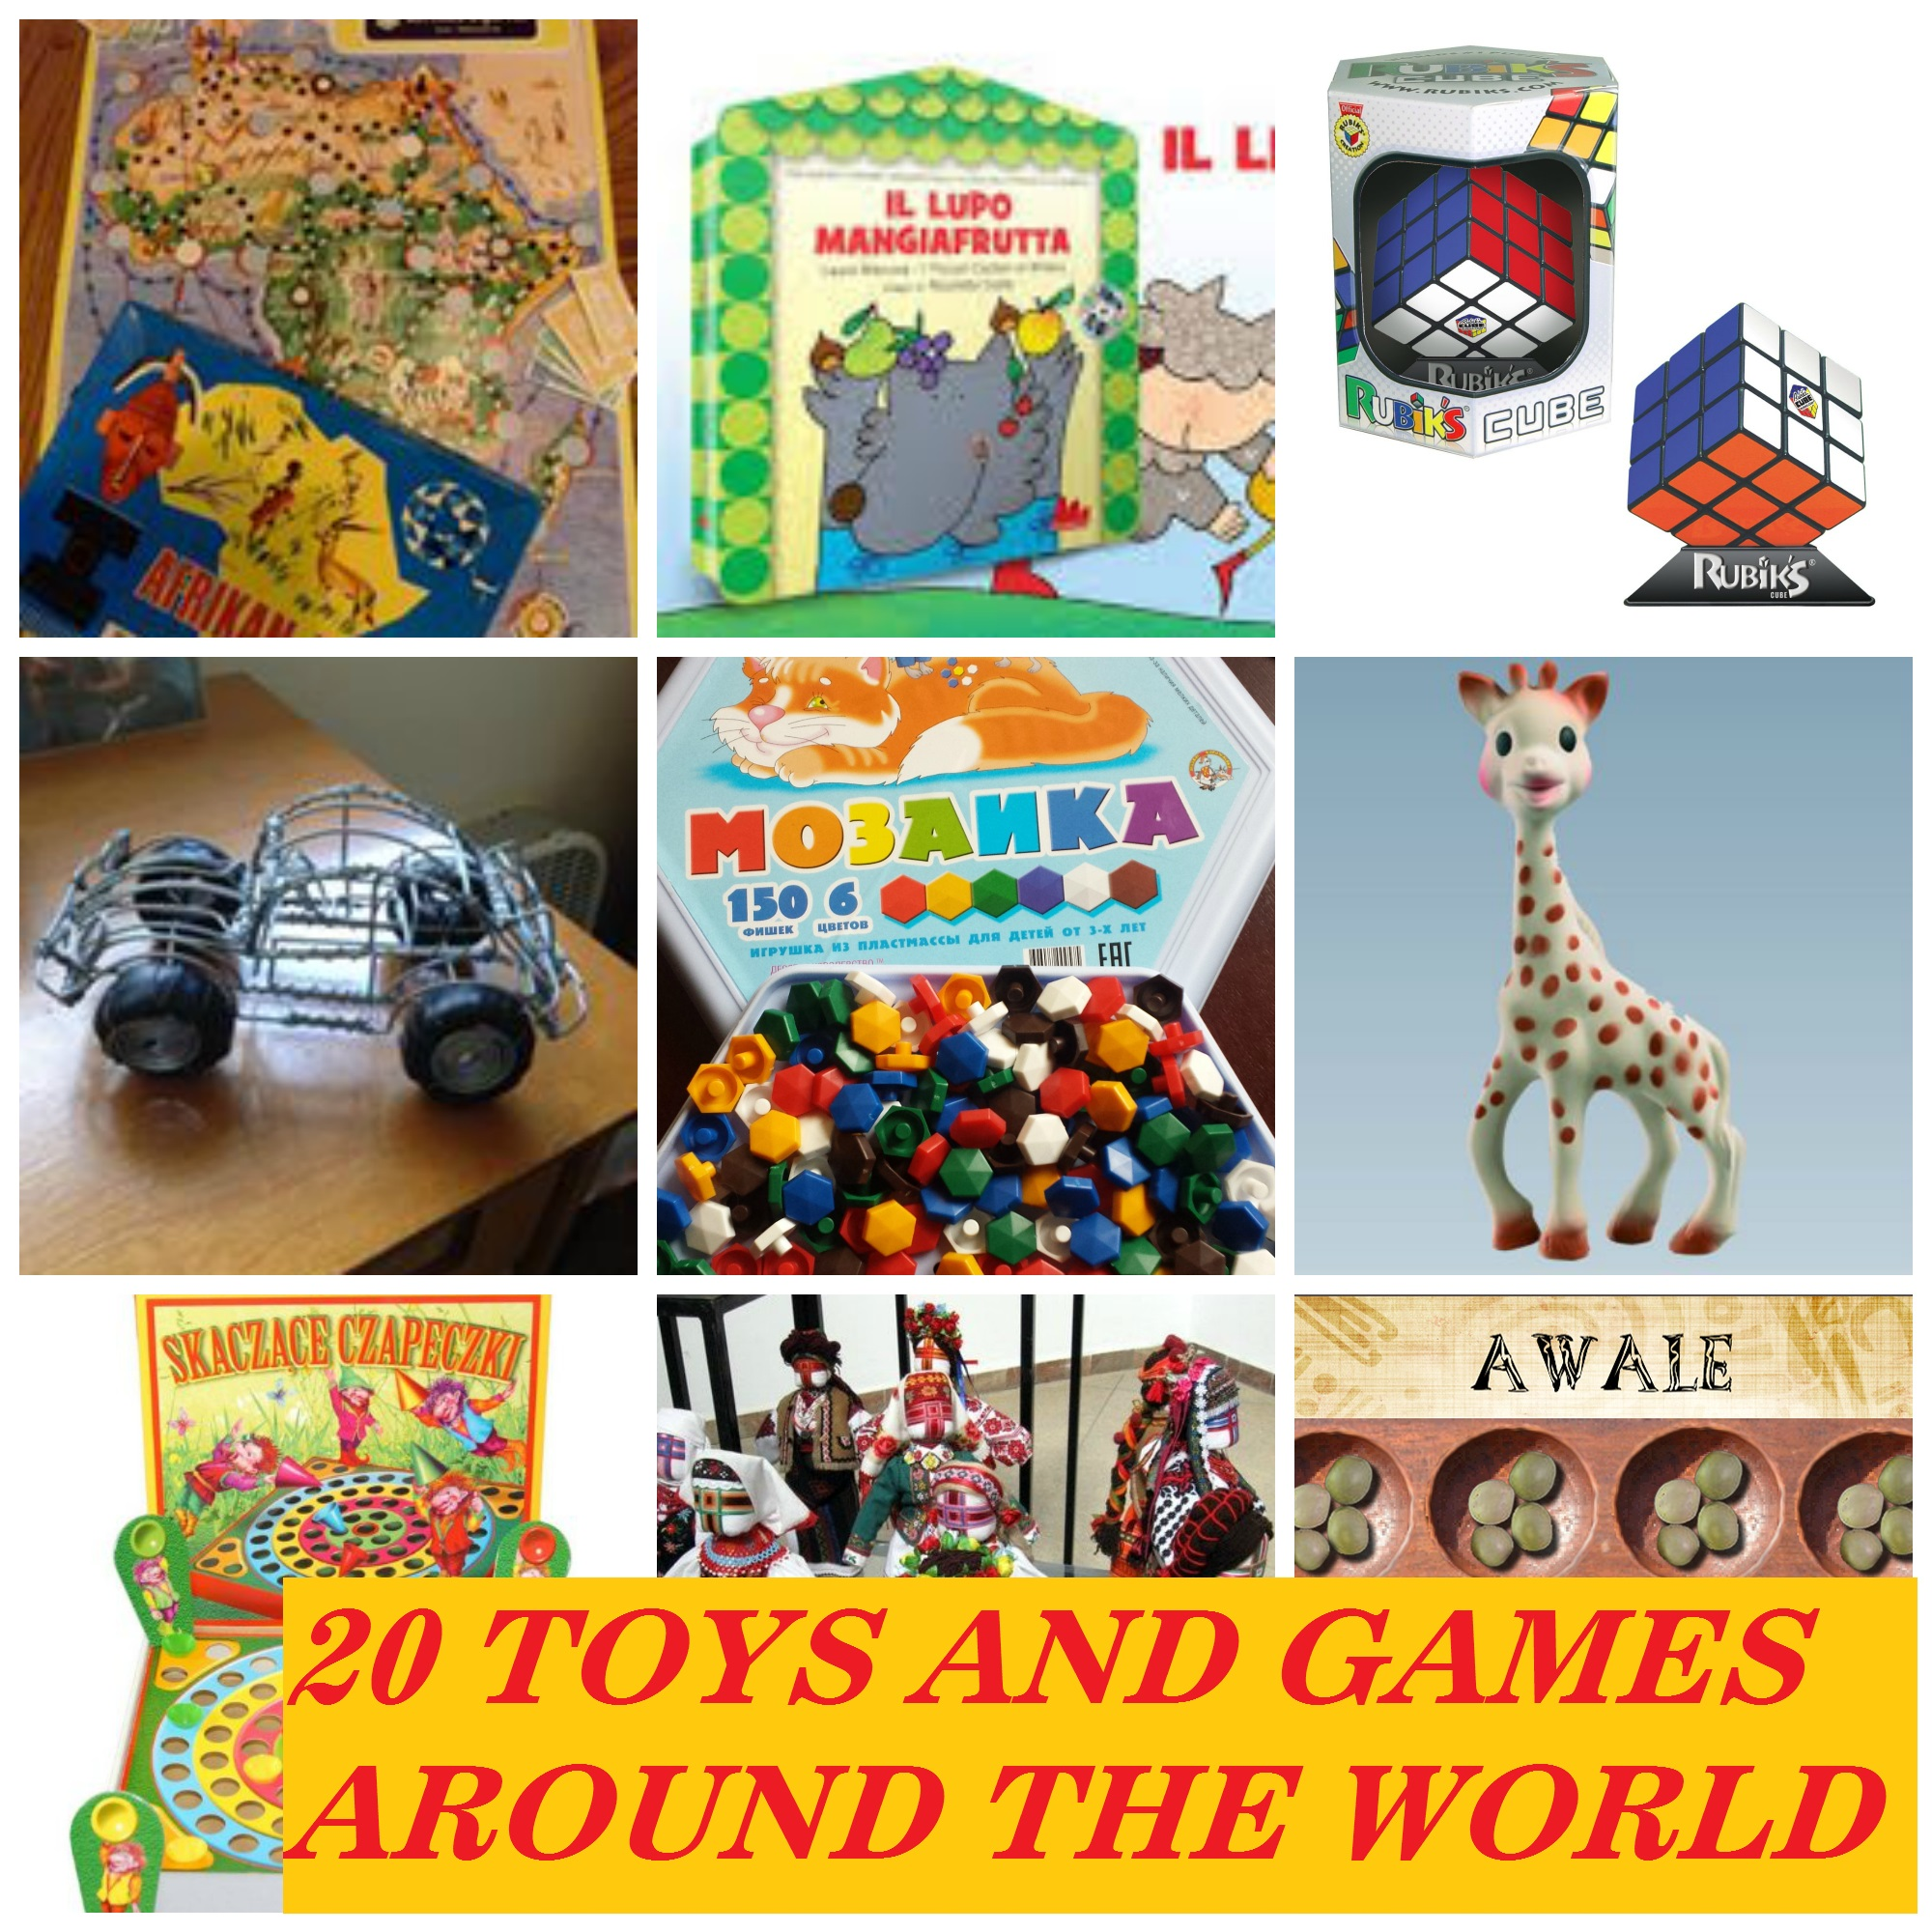 Over 20 Toys And Games From Around The World